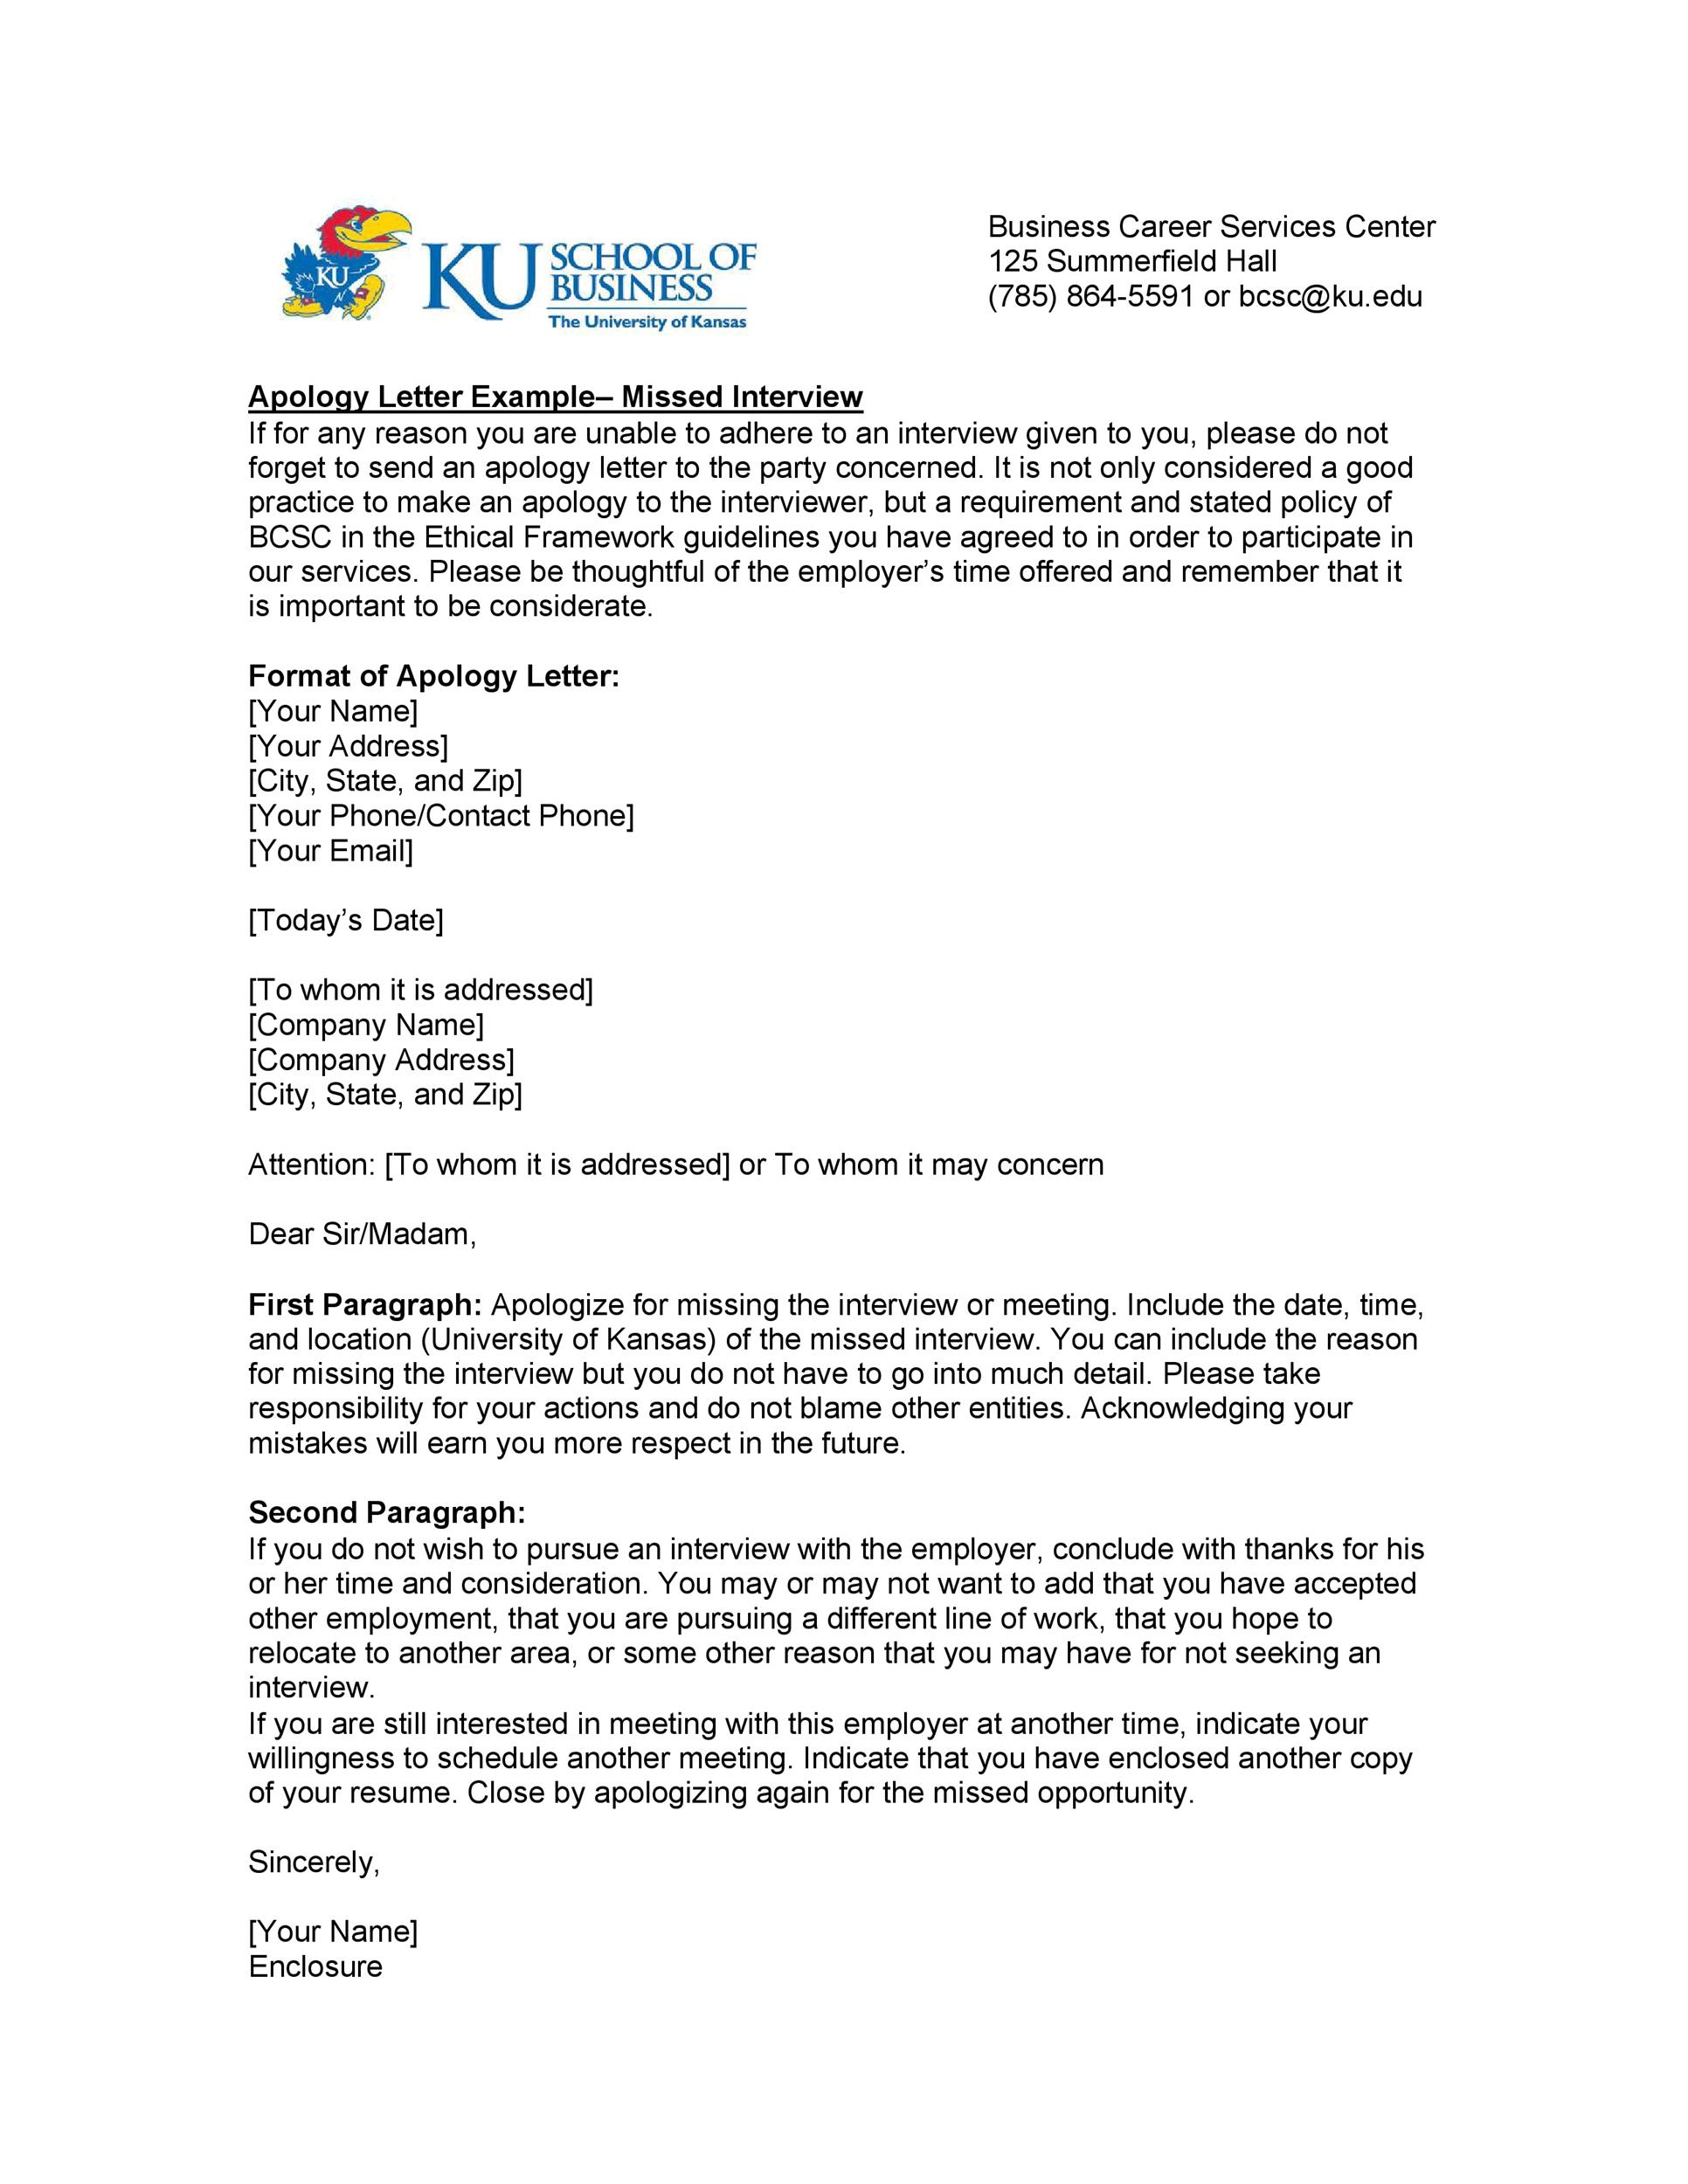 Letter Of Apology For Missing An Appointment from templatelab.com